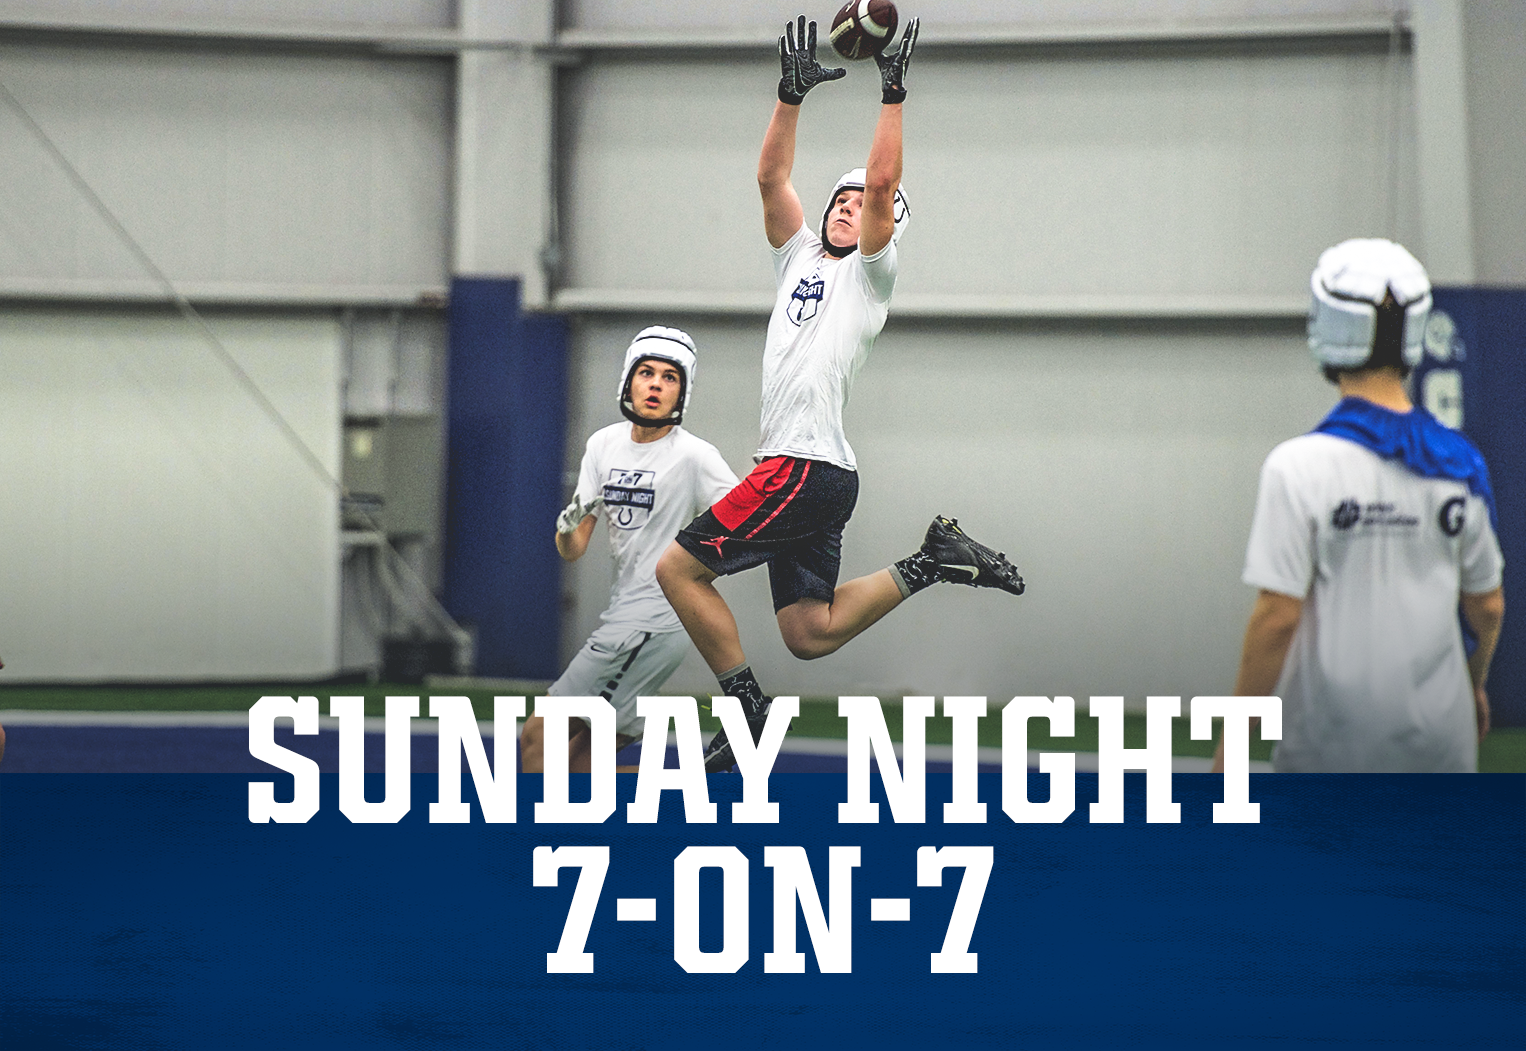 Indianapolis Colts Sunday Night 7-on-7